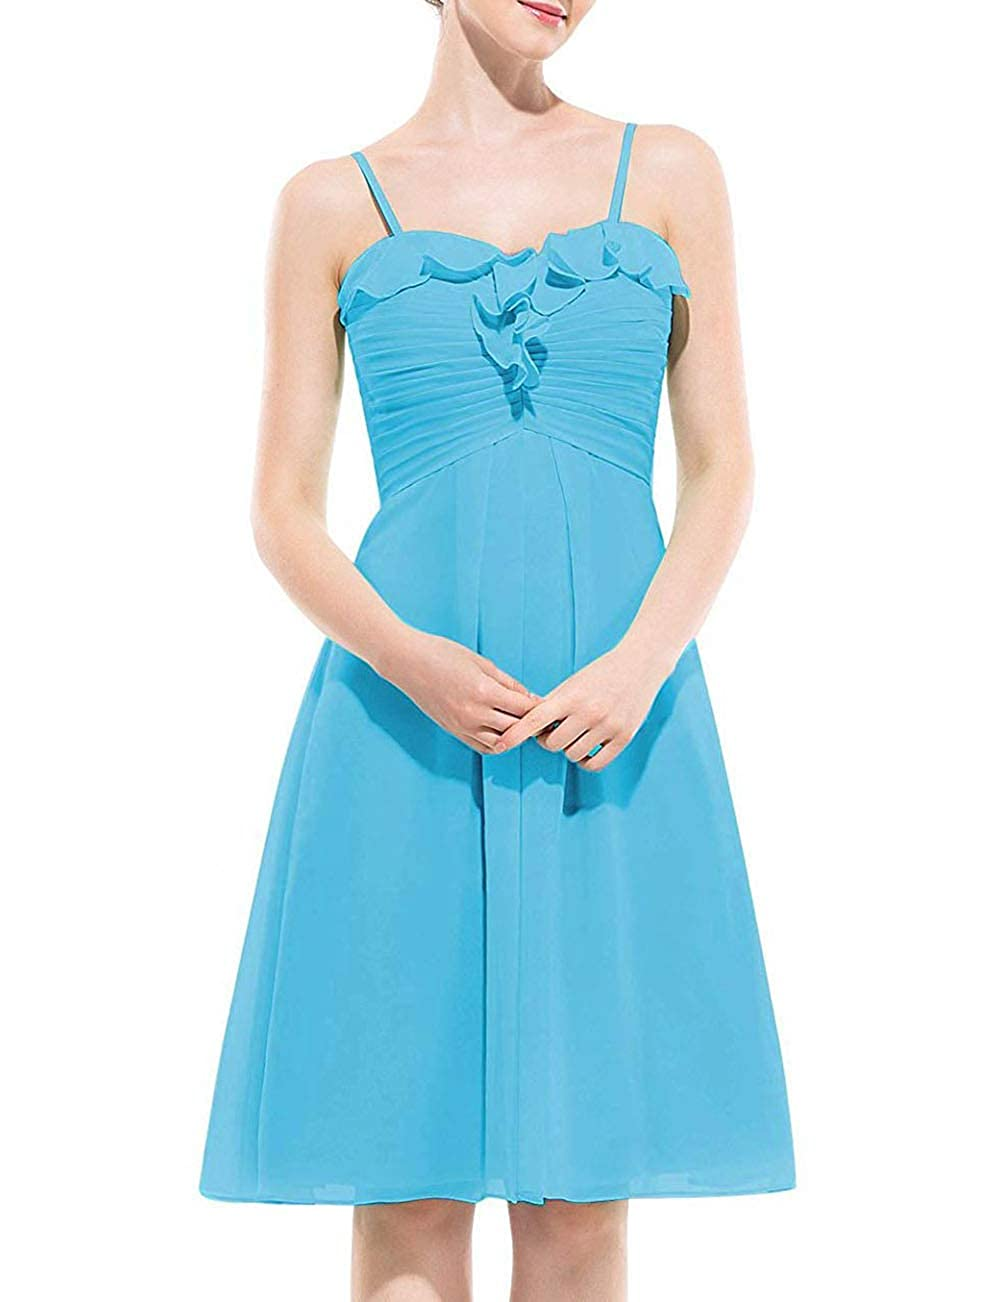 Pool Uther Spaghetti Strap Bridesmaid Dress Short Homecoming Party Cocktail Dresses